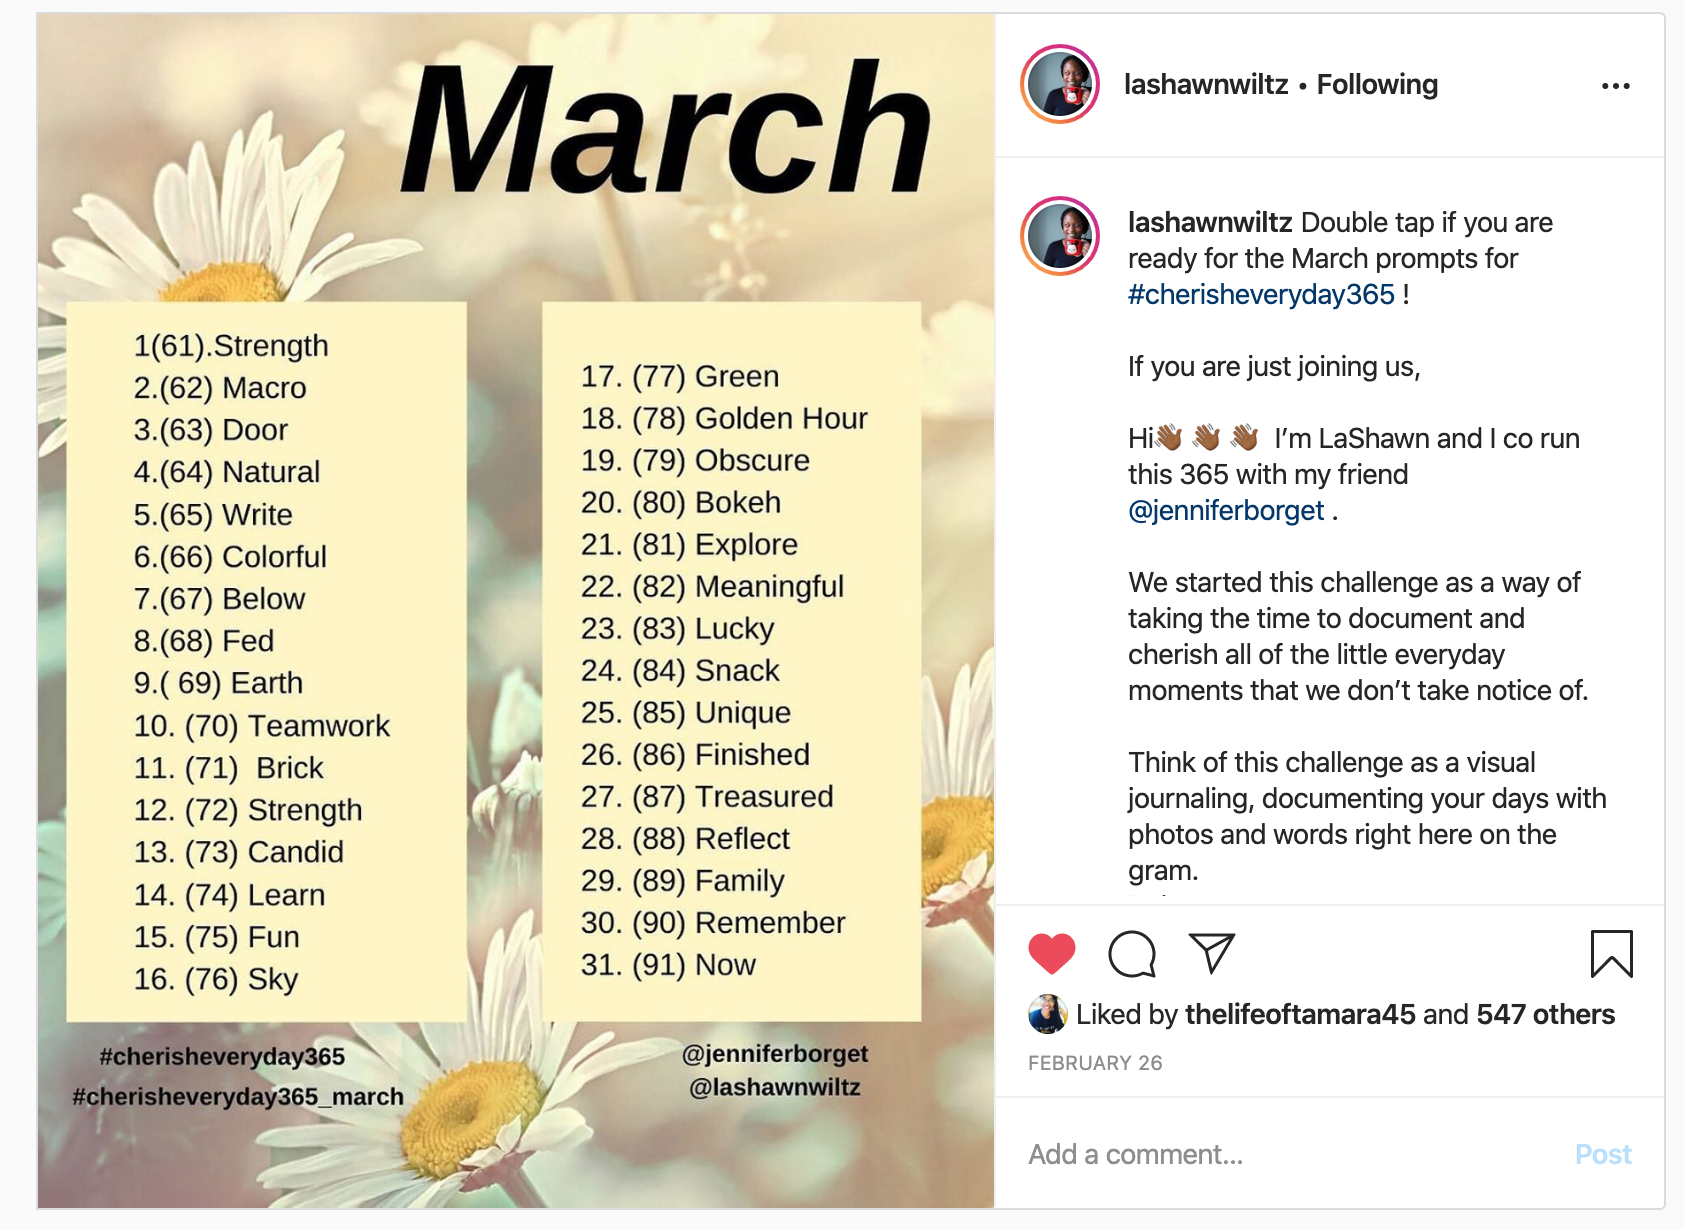 March prompts for #cherisheveryday365